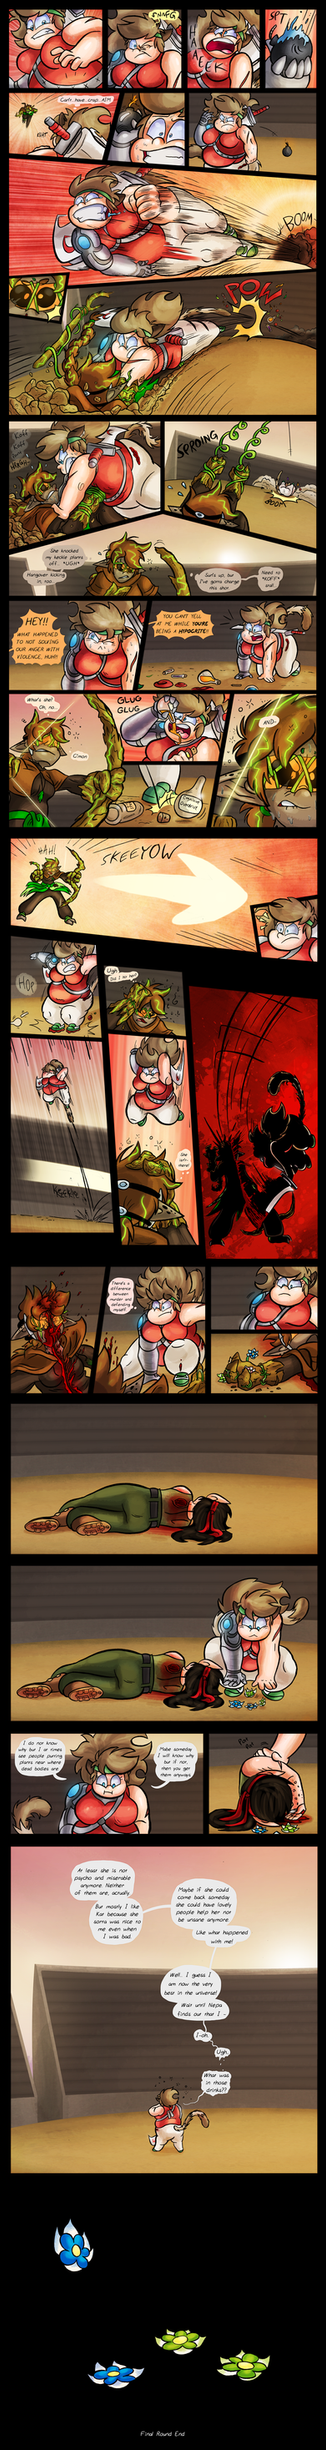 FT-OCT :: Final Round - Kat v Wryn v Moon P6 by Spectrumelf